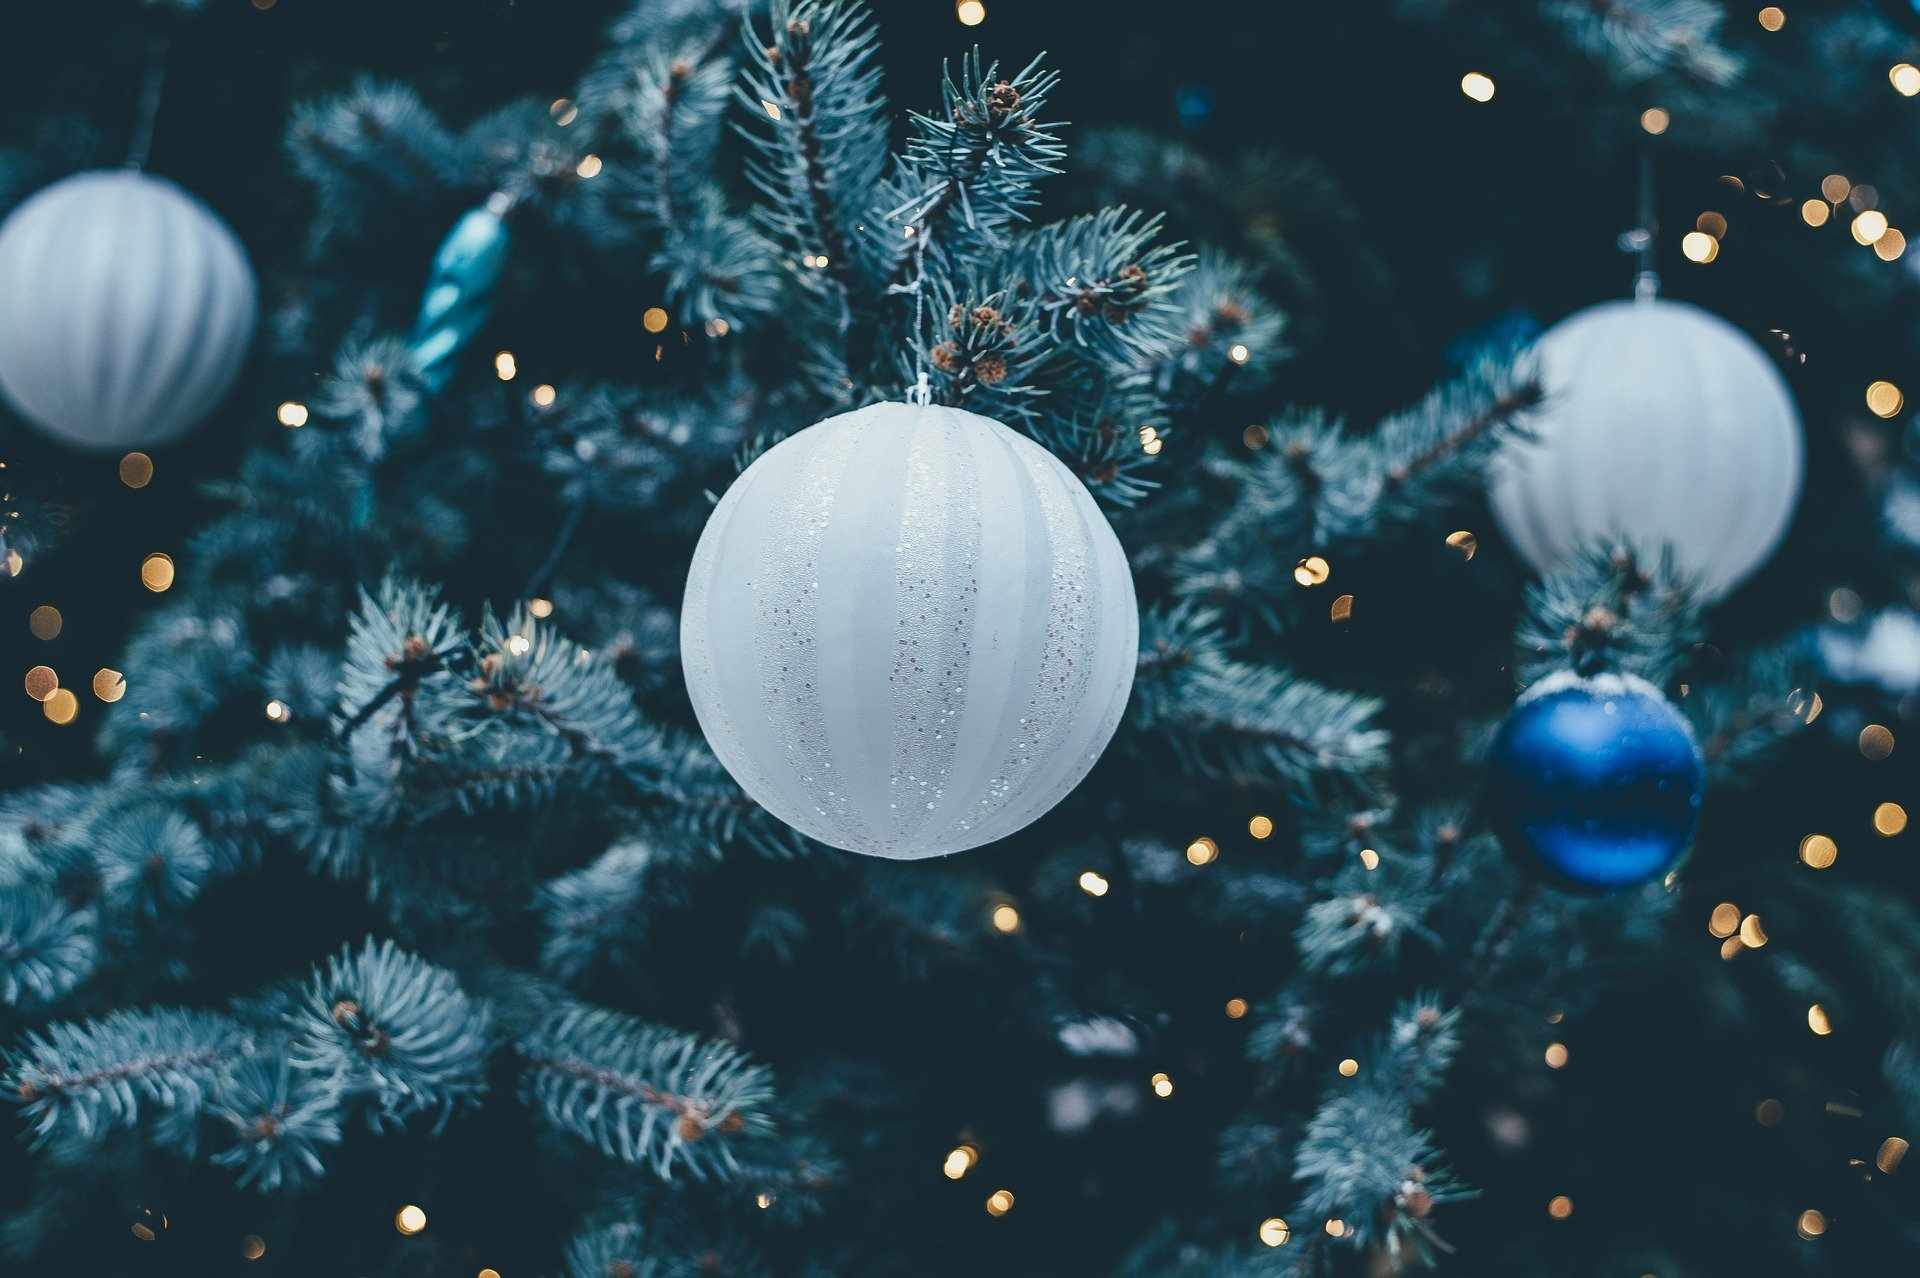 white globe ornament on Christmas tree